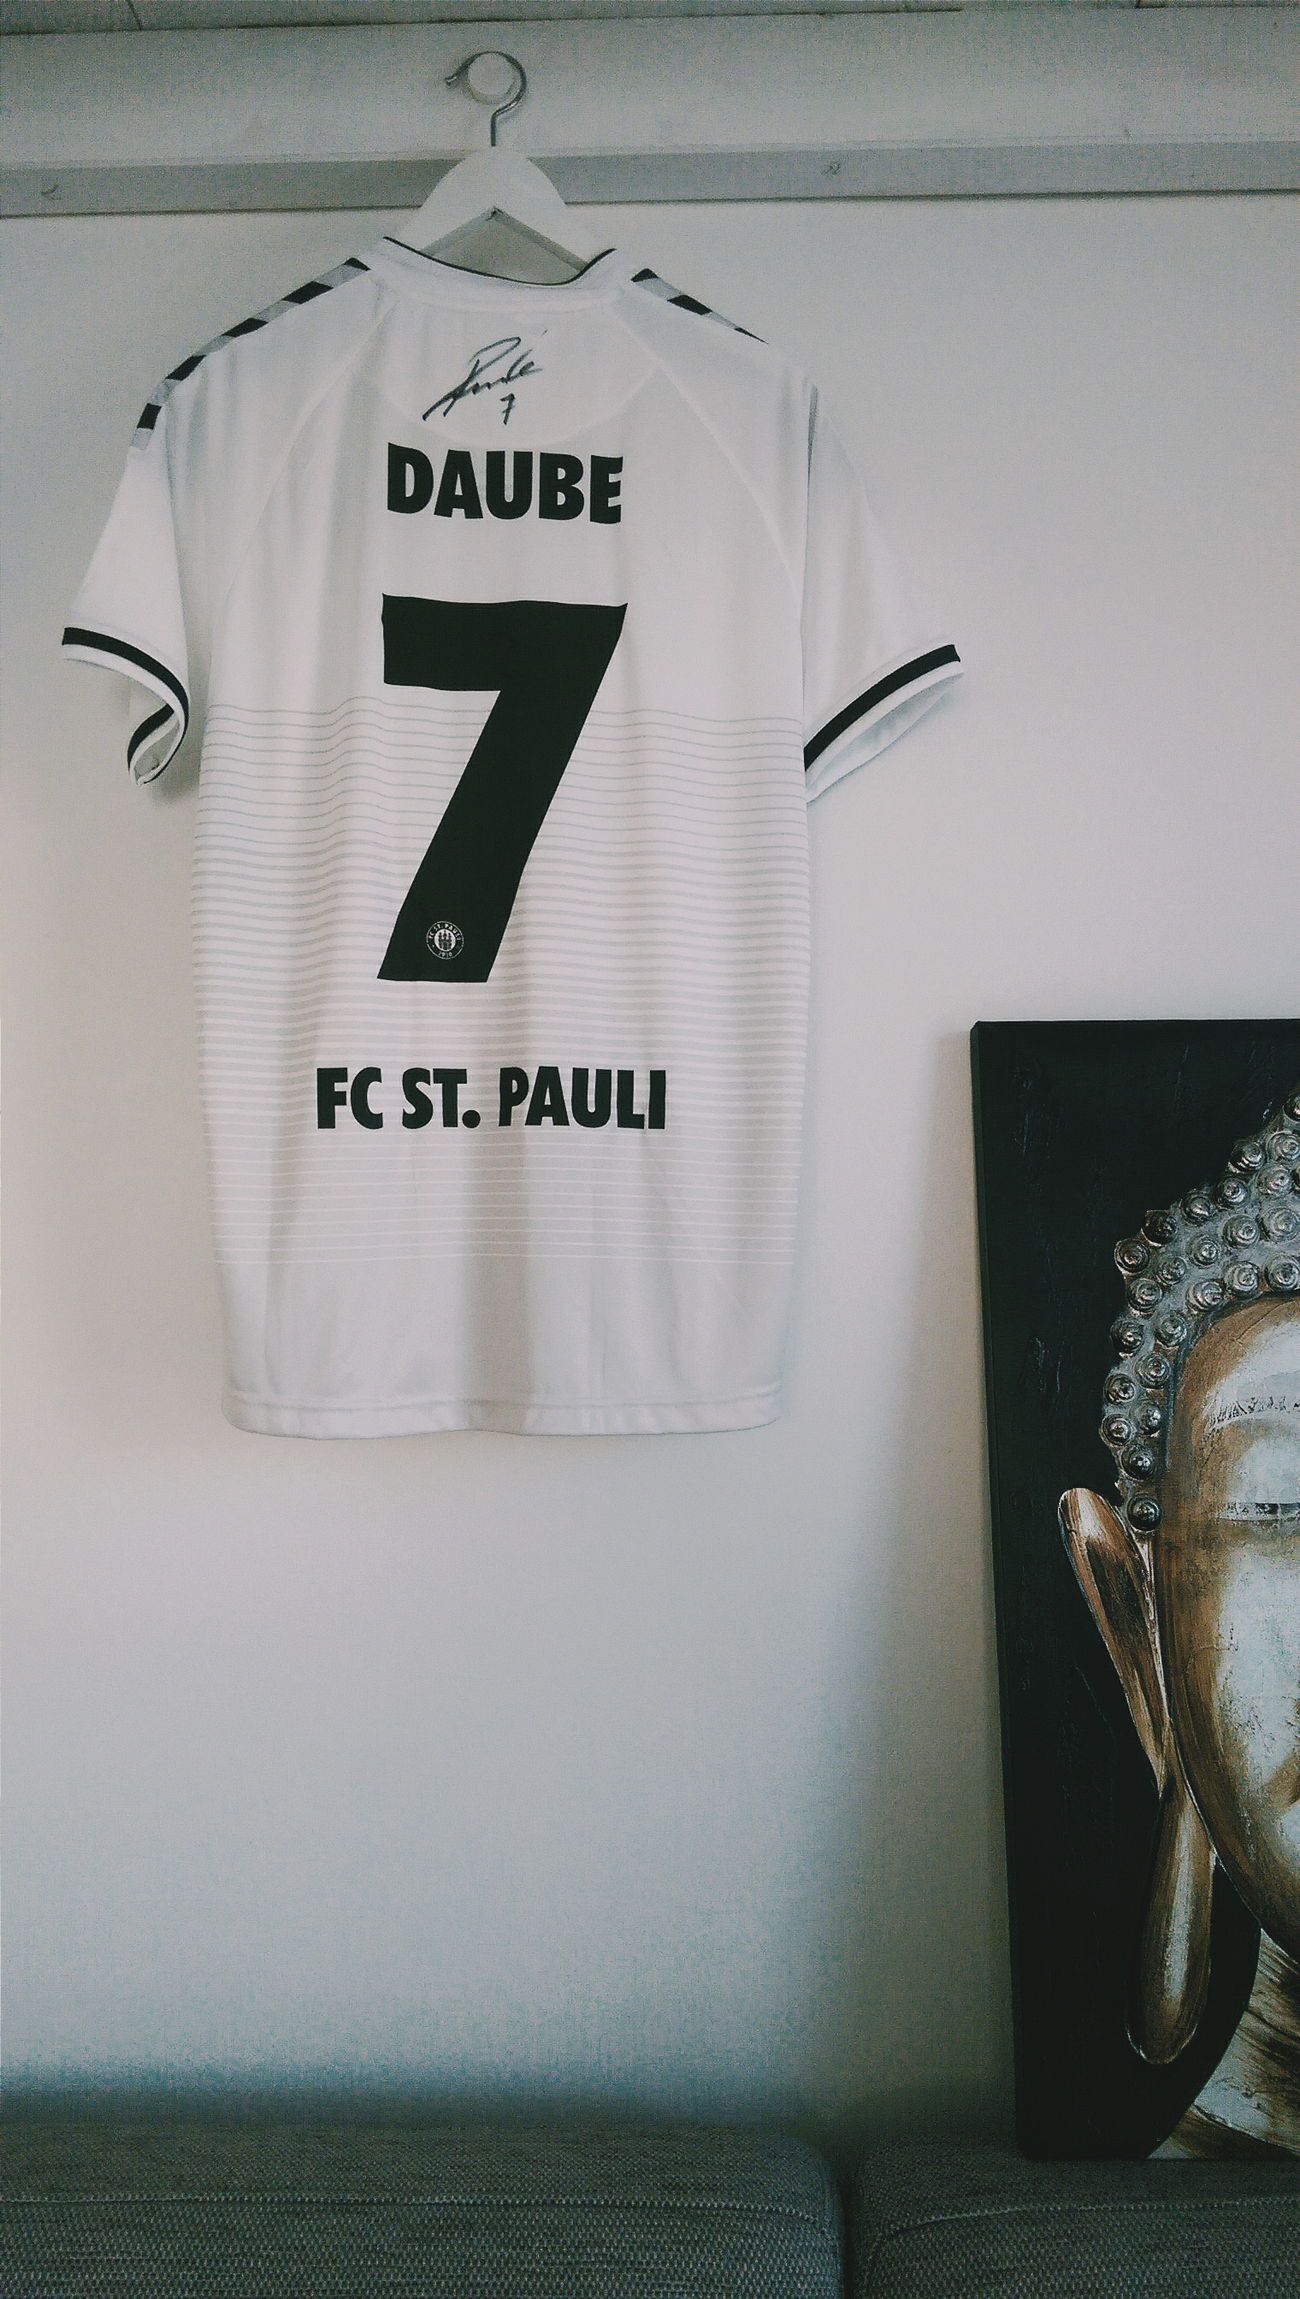 FCSP Fcstpauli 1910 YNWA Daube White Football Sign Stpauli